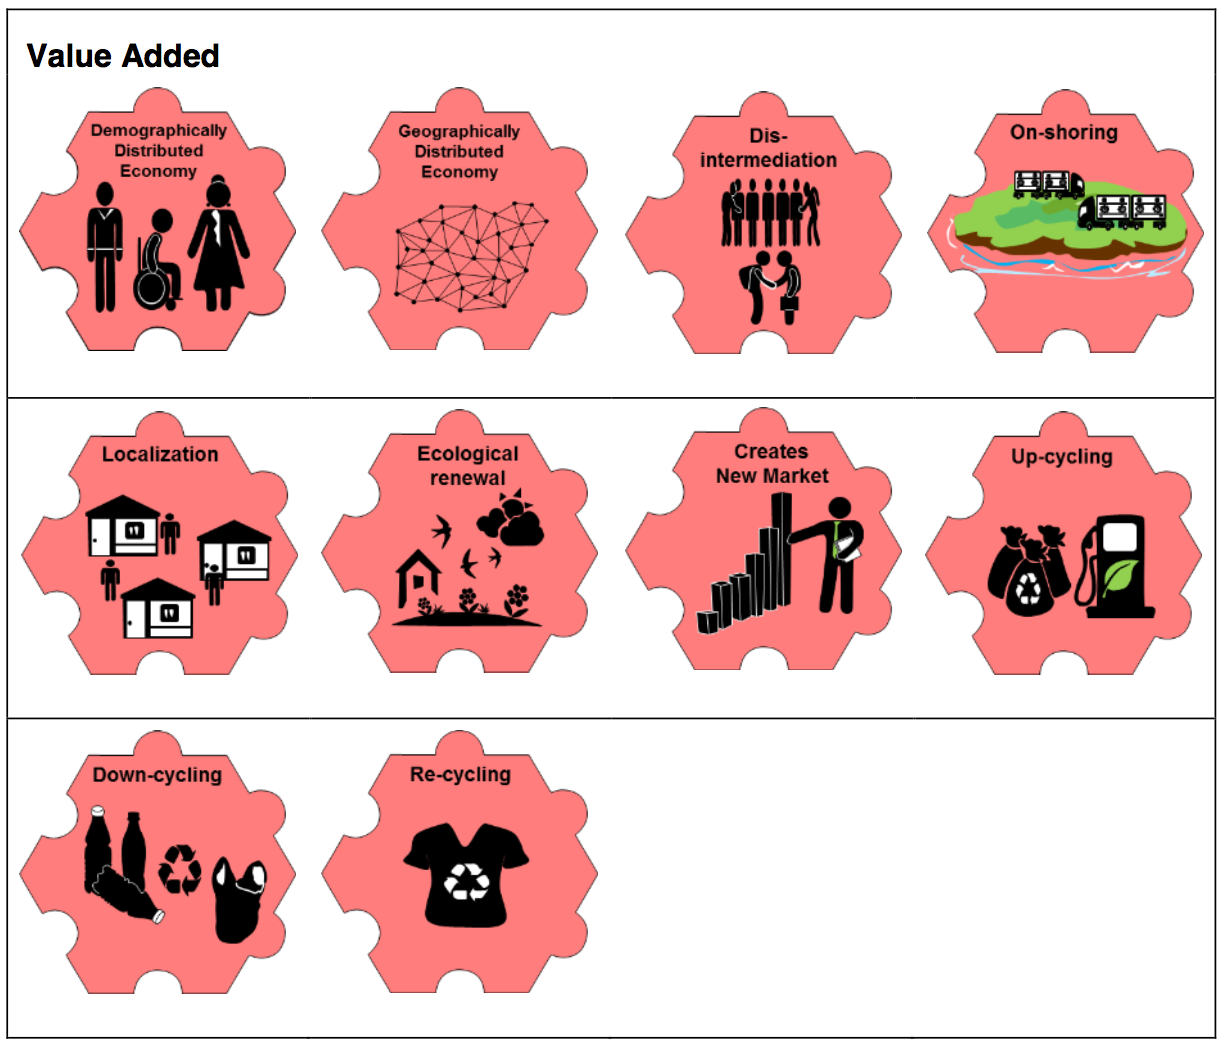 Game pieces in the system for 'Value Added': Demographically Distributed Economy; Geographically Distributed Economy; Disintermediation; On-shoring; Localization, Ecological renewal; Creates New Markets; Up-cycling; Down-cycling; Re-cycling.